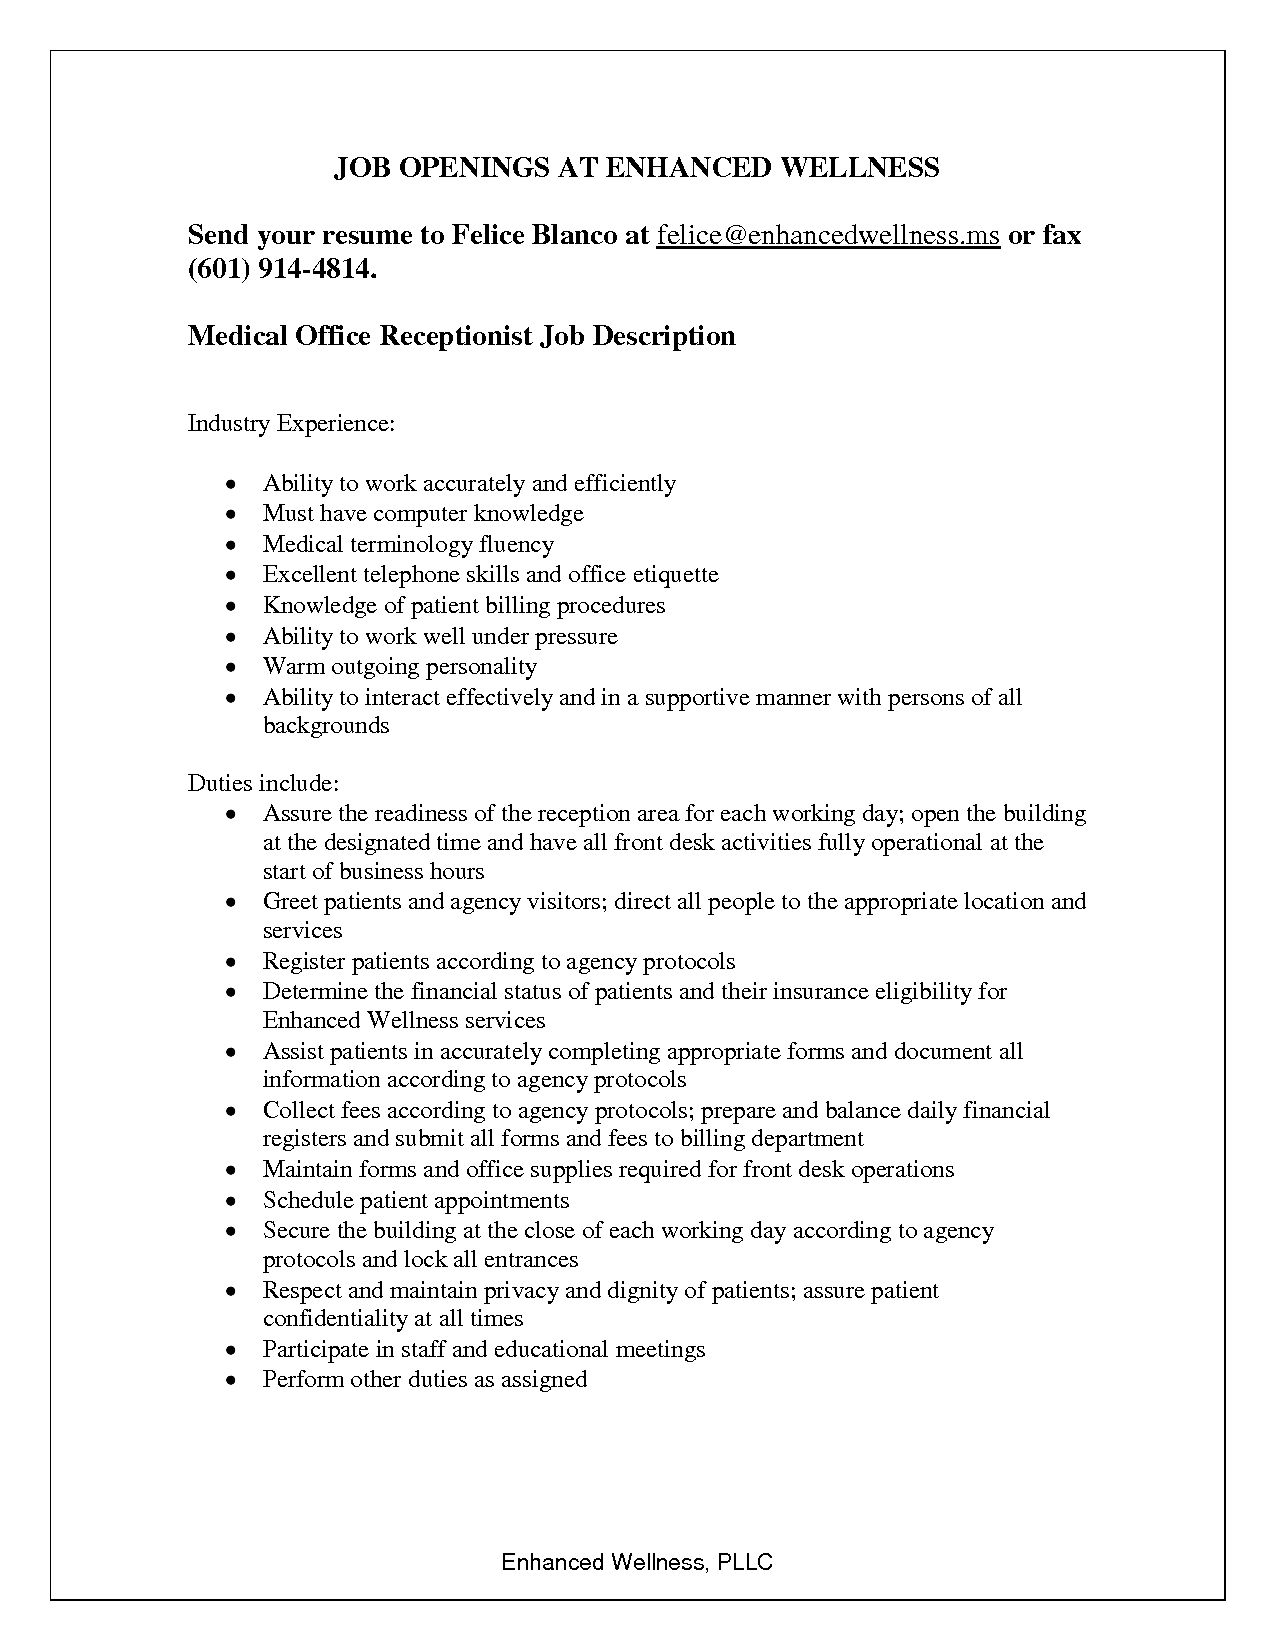 Medical Office Front Desk Job Description Receptionist Jobs Medical Receptionist Job Description